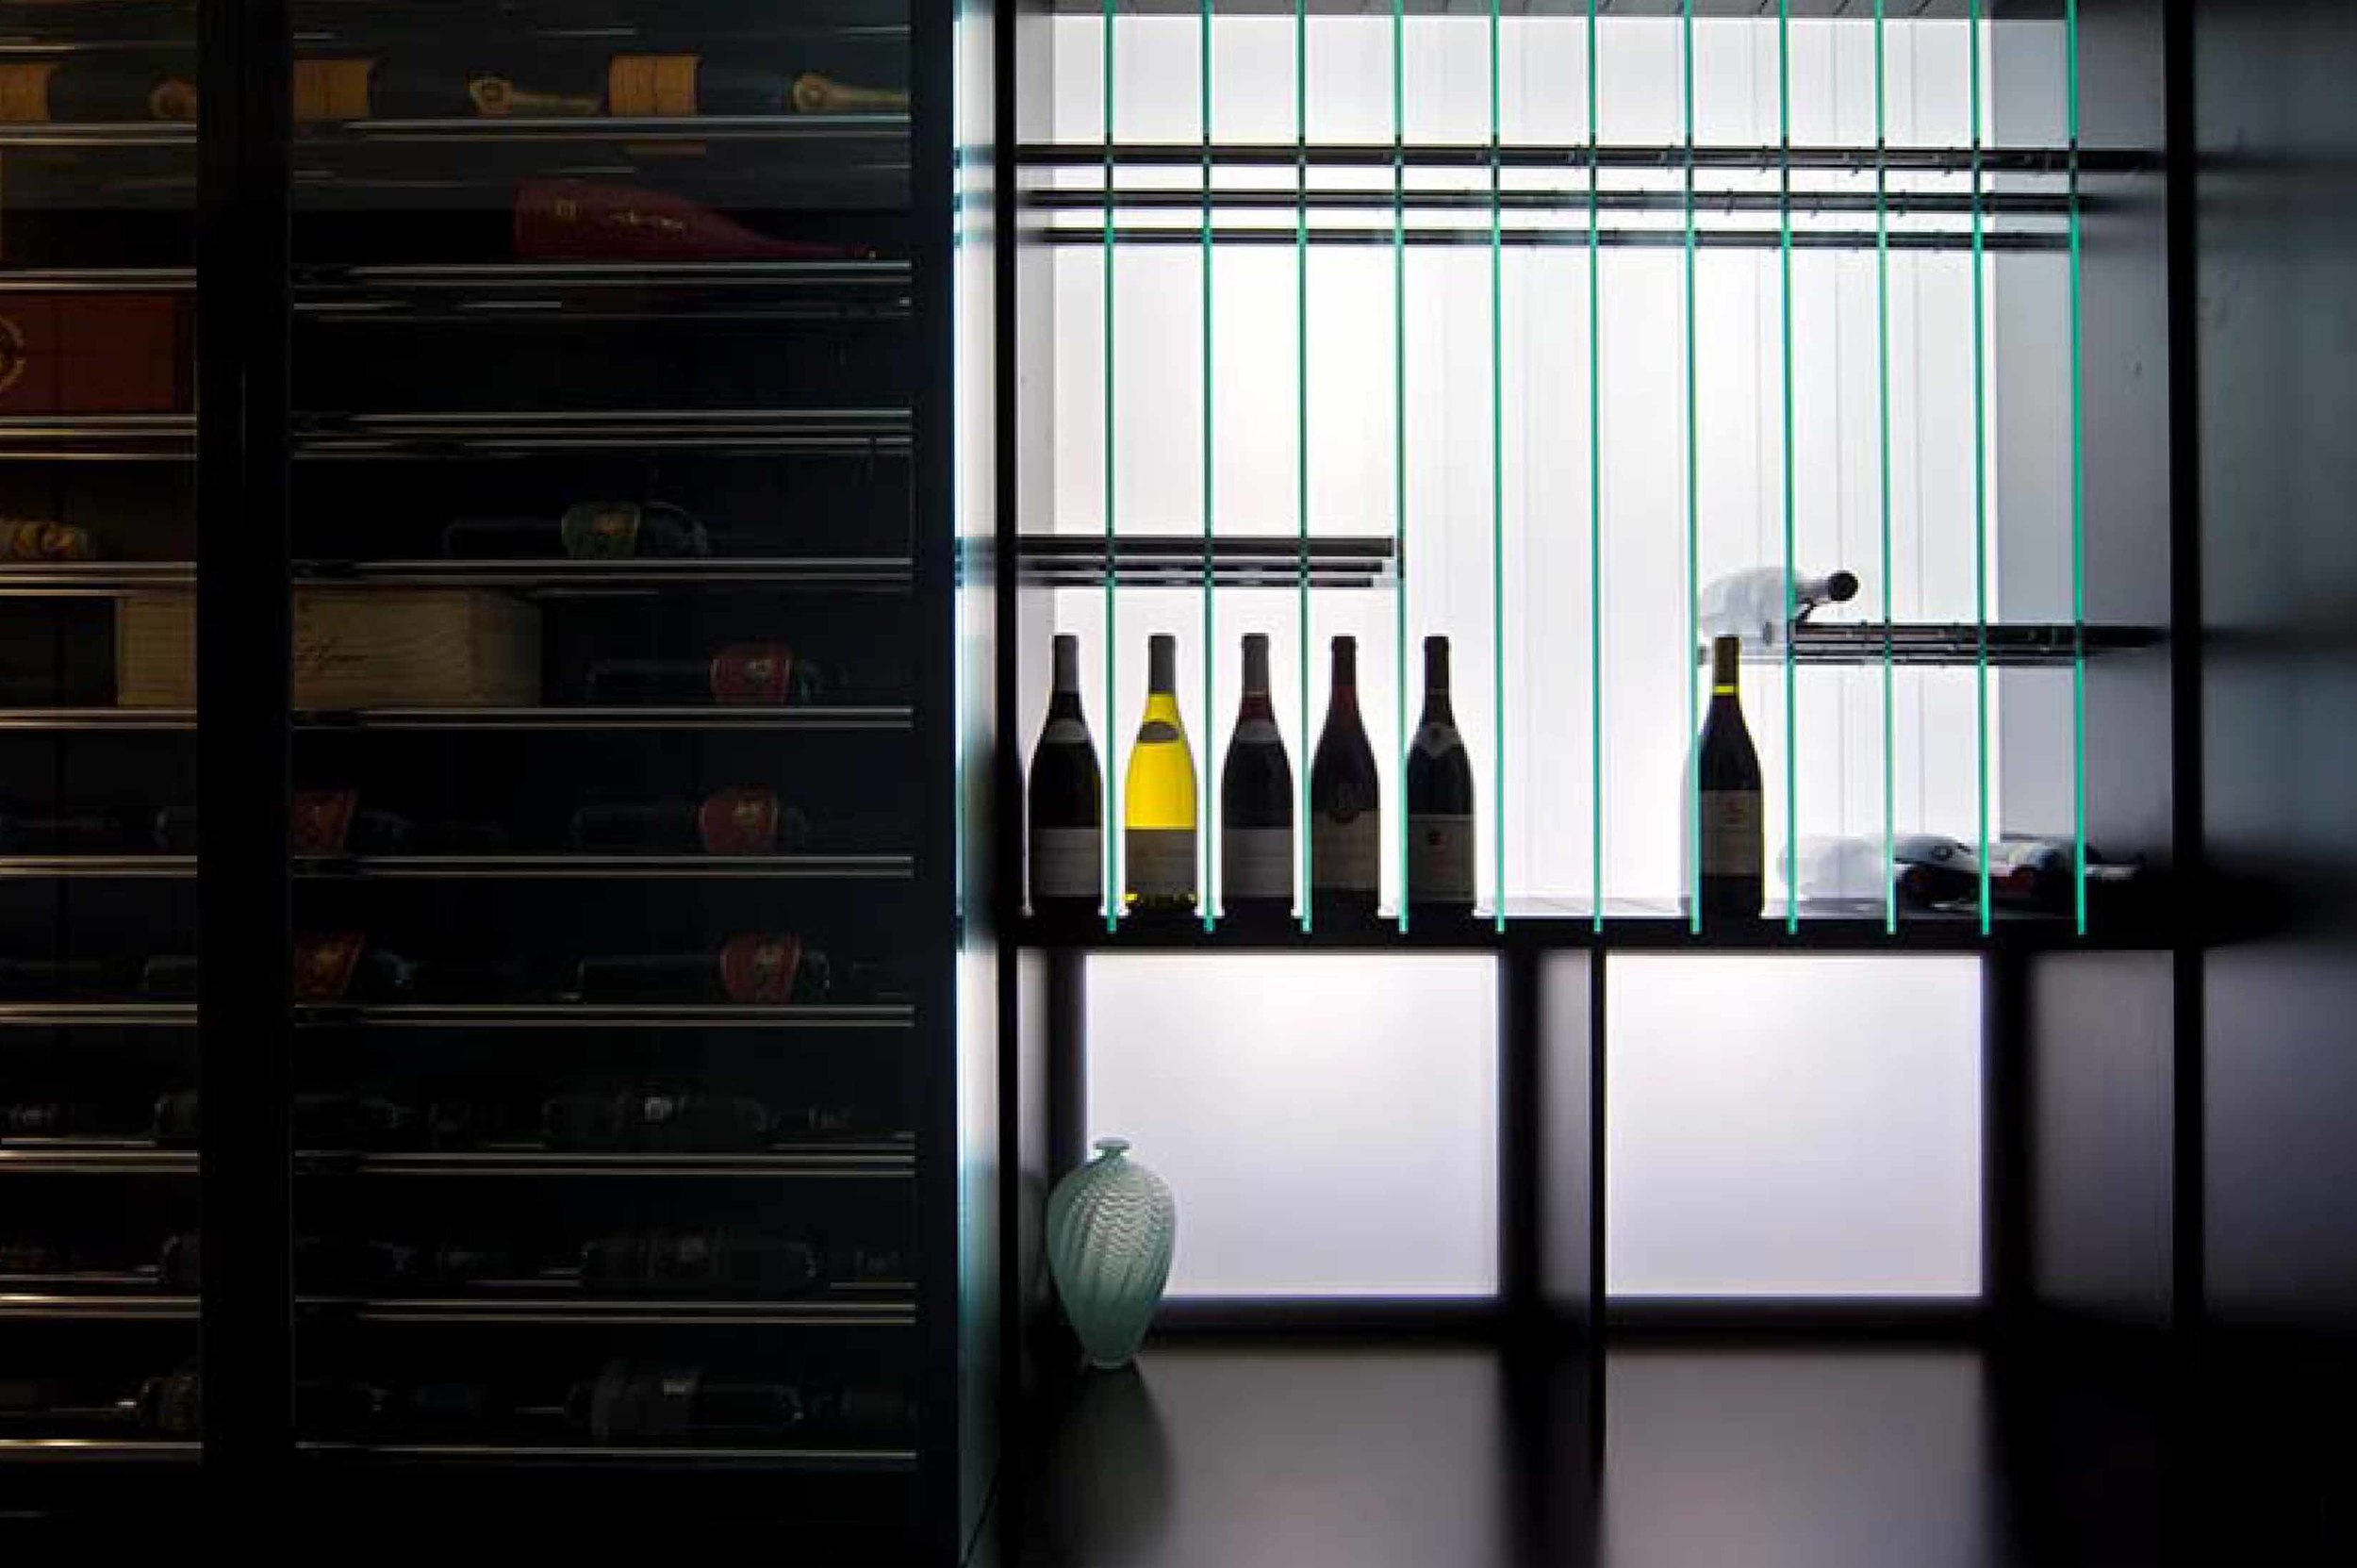 Middle Park cellar by Chamberlain Architects